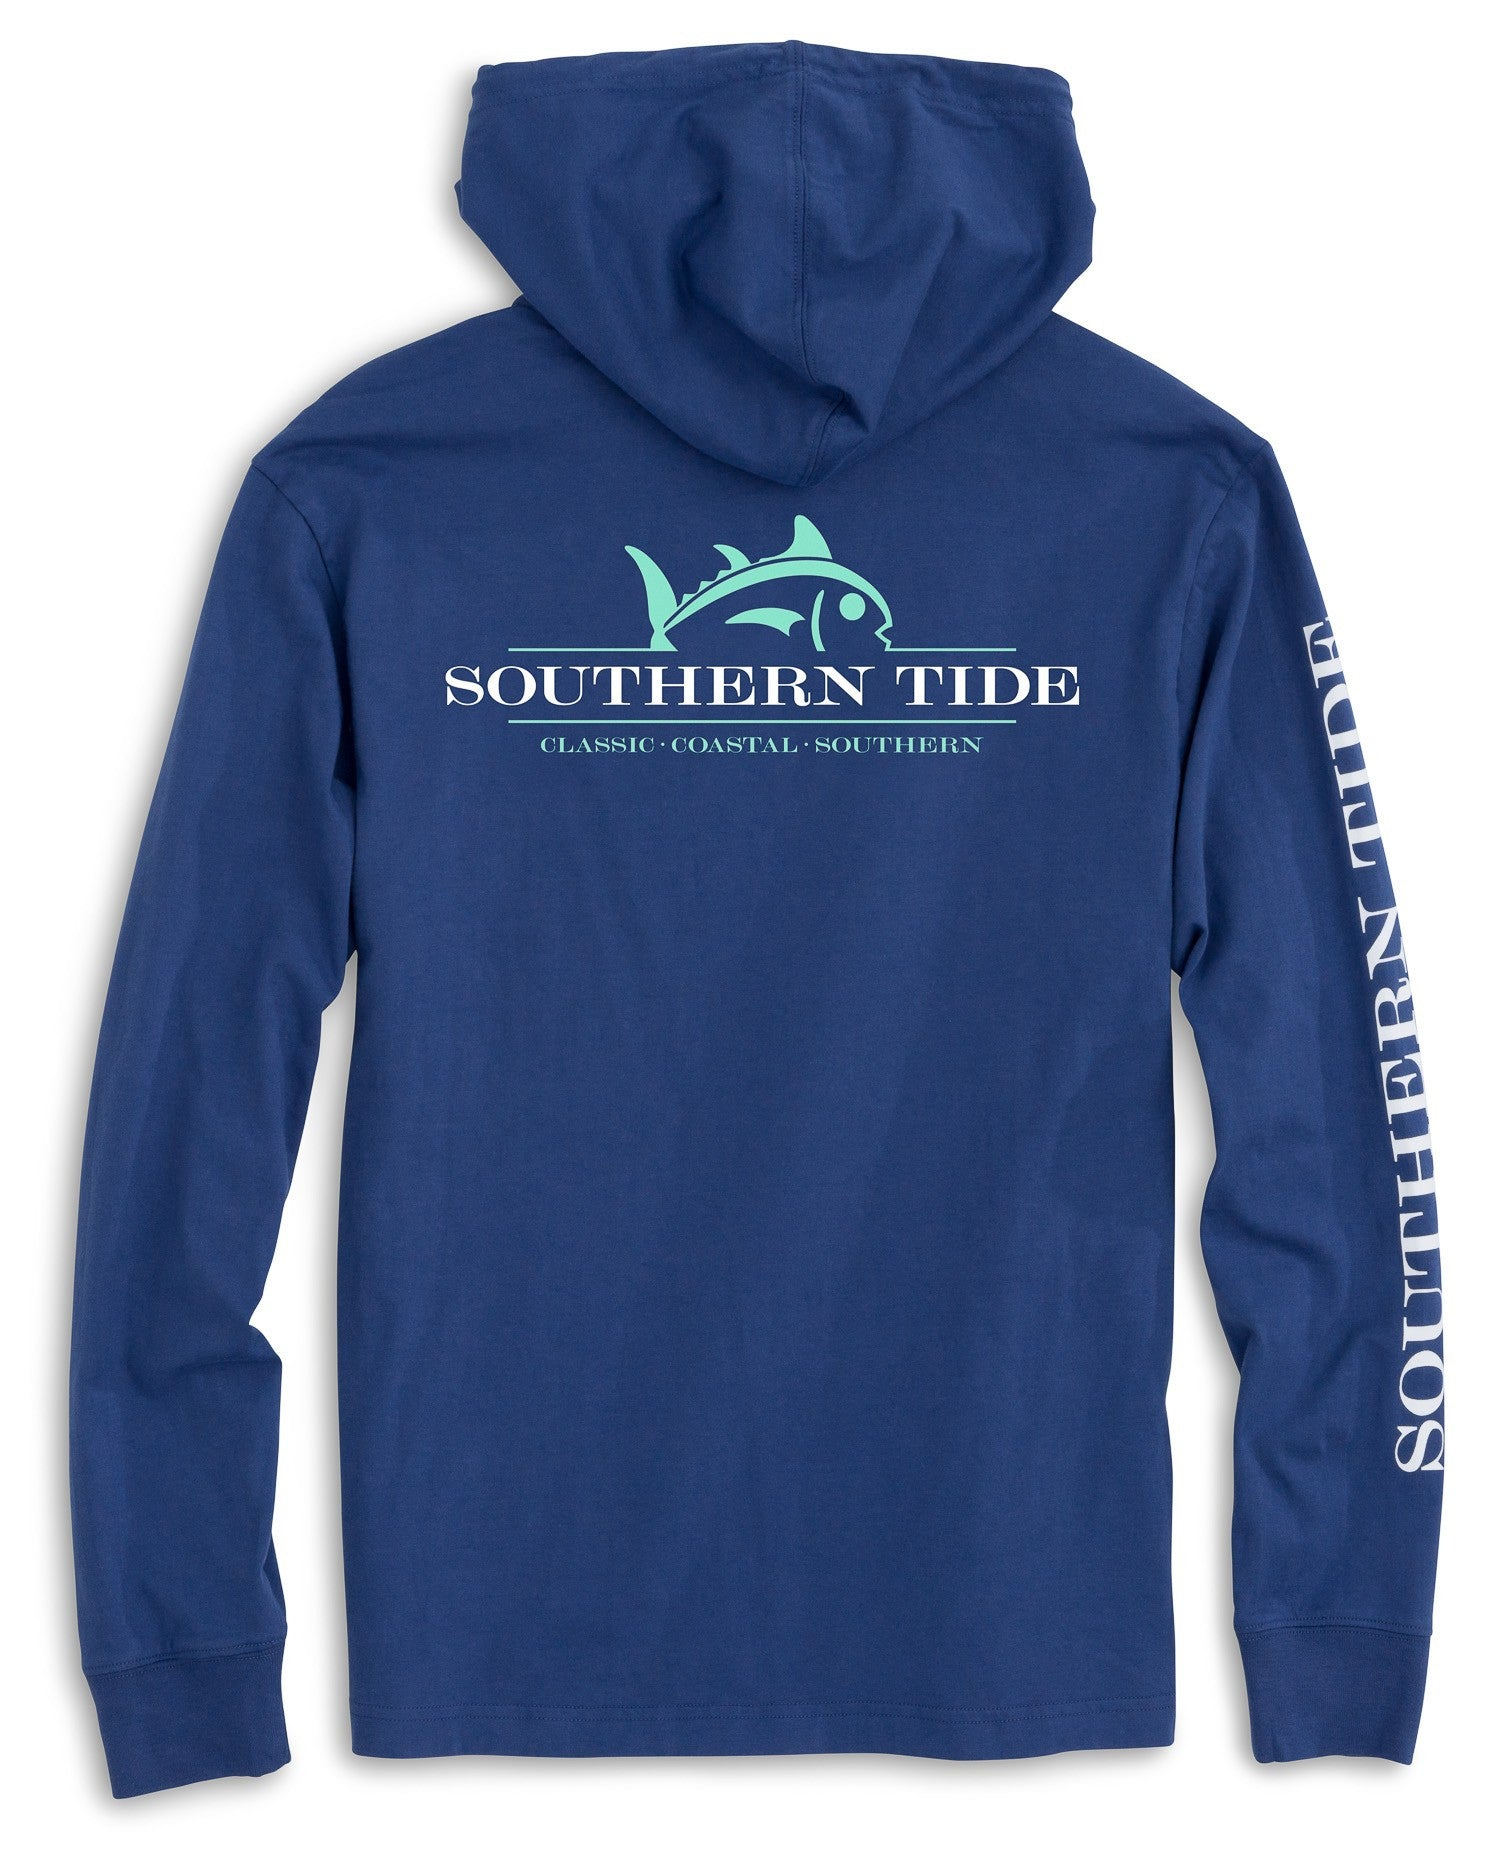 Southern Tide Rising Skipjack Long Sleeve Hoodie T-Shirt - Seven Seas Blue Back View